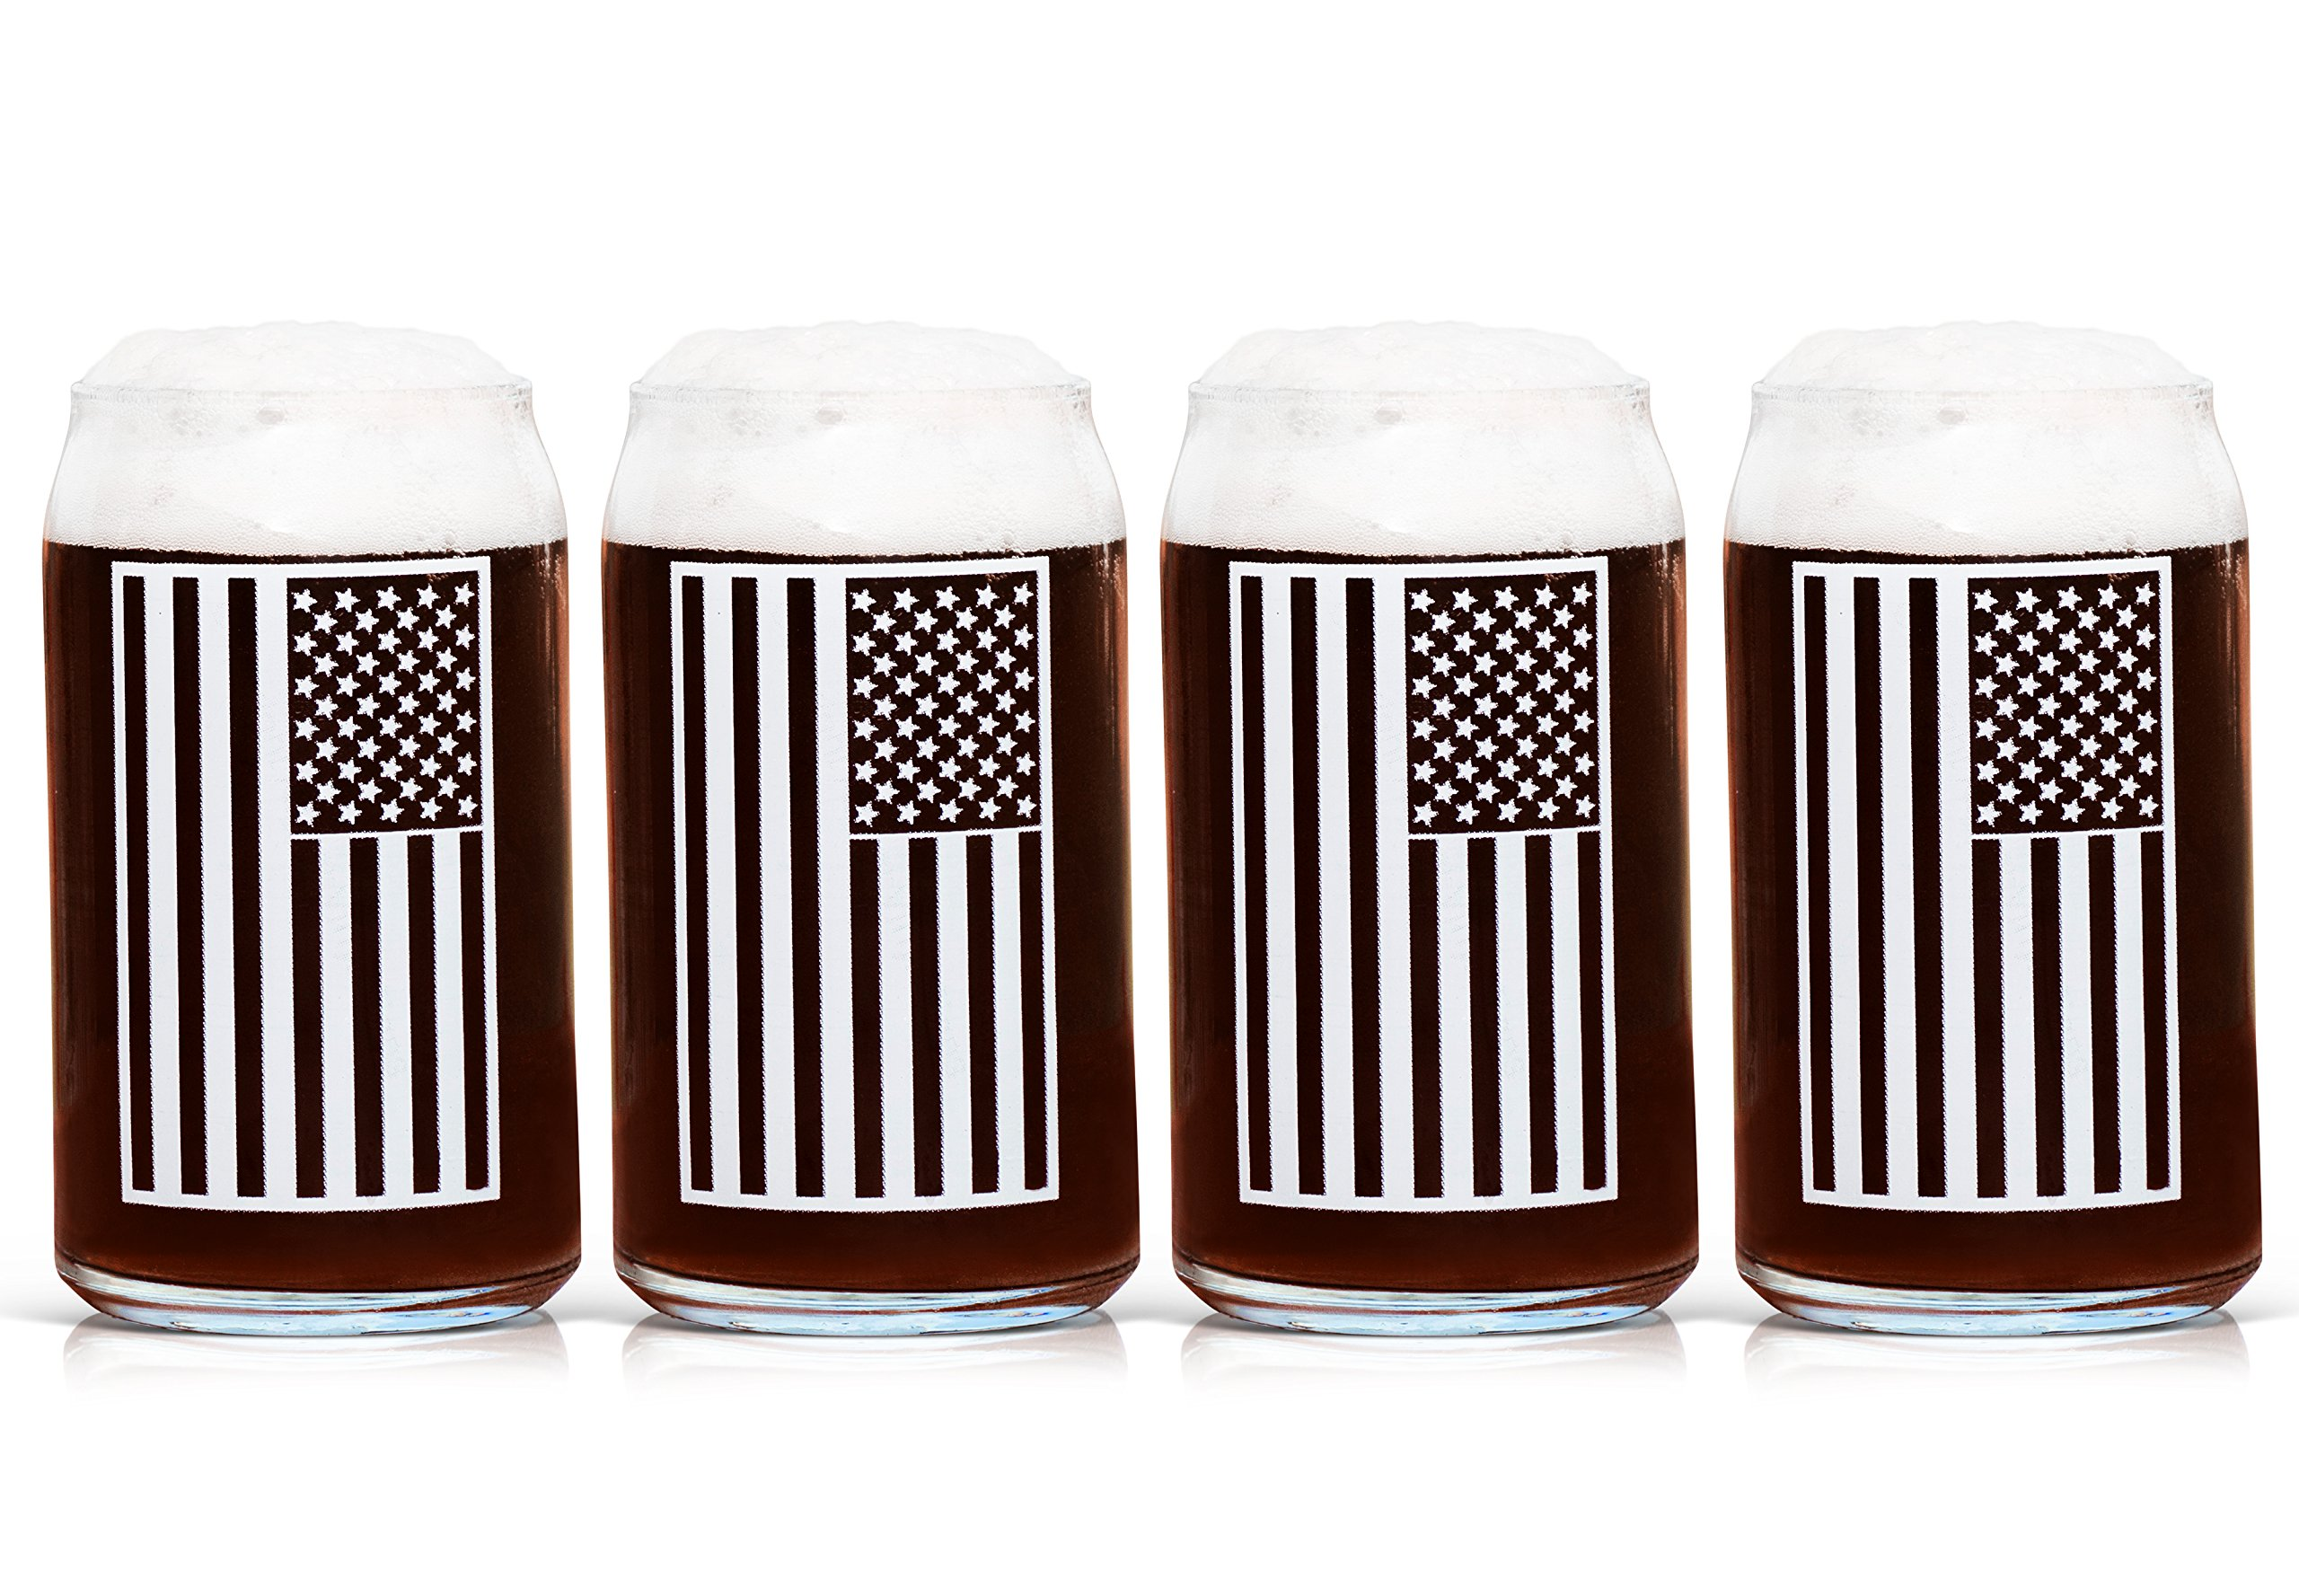 Beer Can Shaped Drinking Glasses Set Of 4 Libby 209 16oz USA American Flag Cool Birthday Present or Gift for Dad, Kitchen, Home Bar, 4th of July!